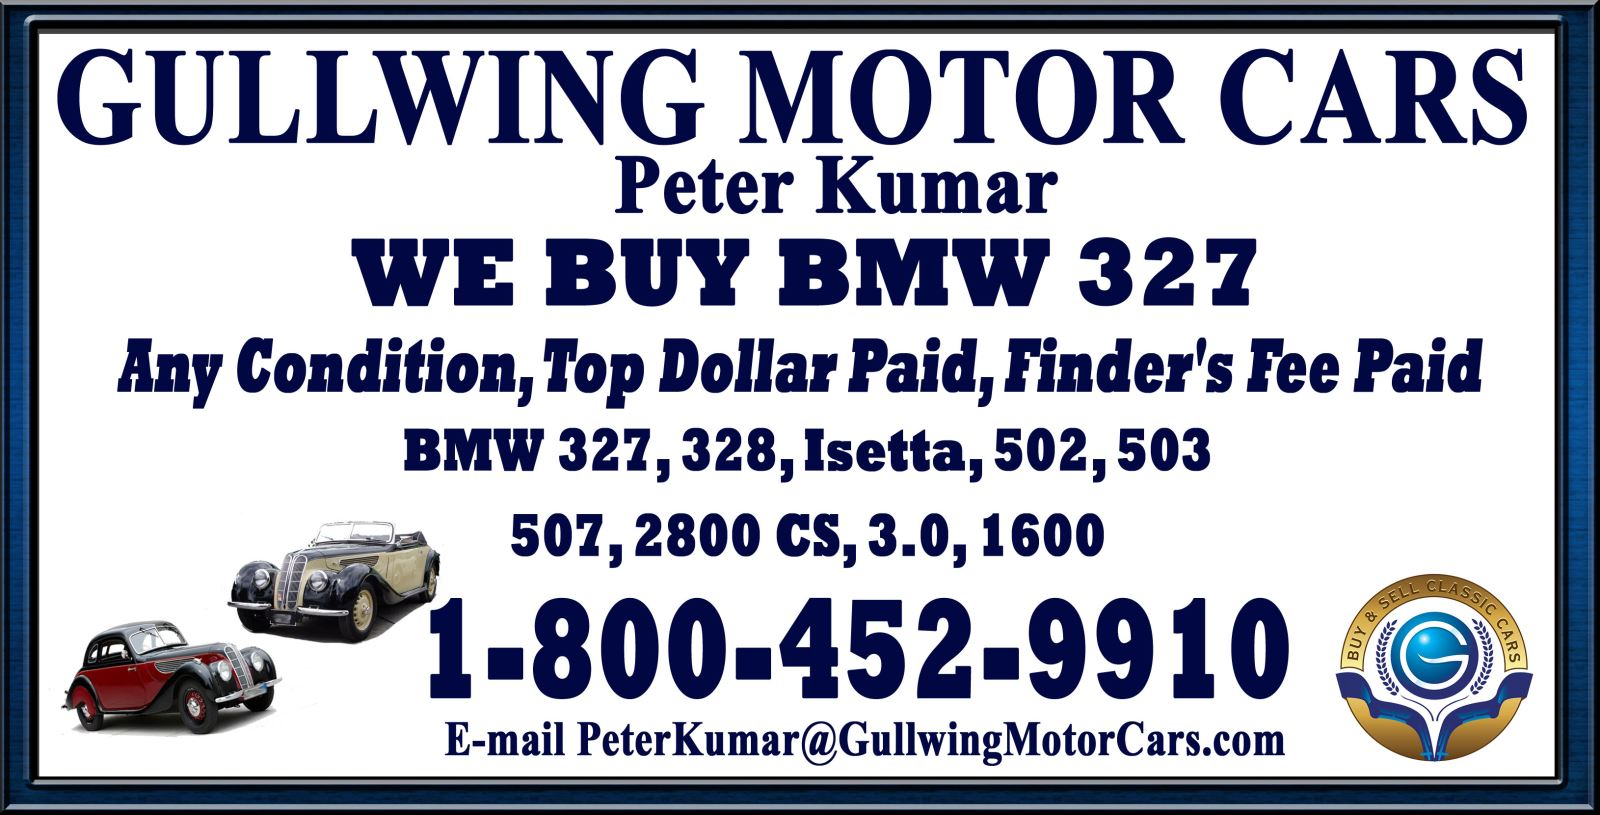 Sell Classic BMW 327 | Call Gullwing Motor if Vintage BMW 327 For Sale